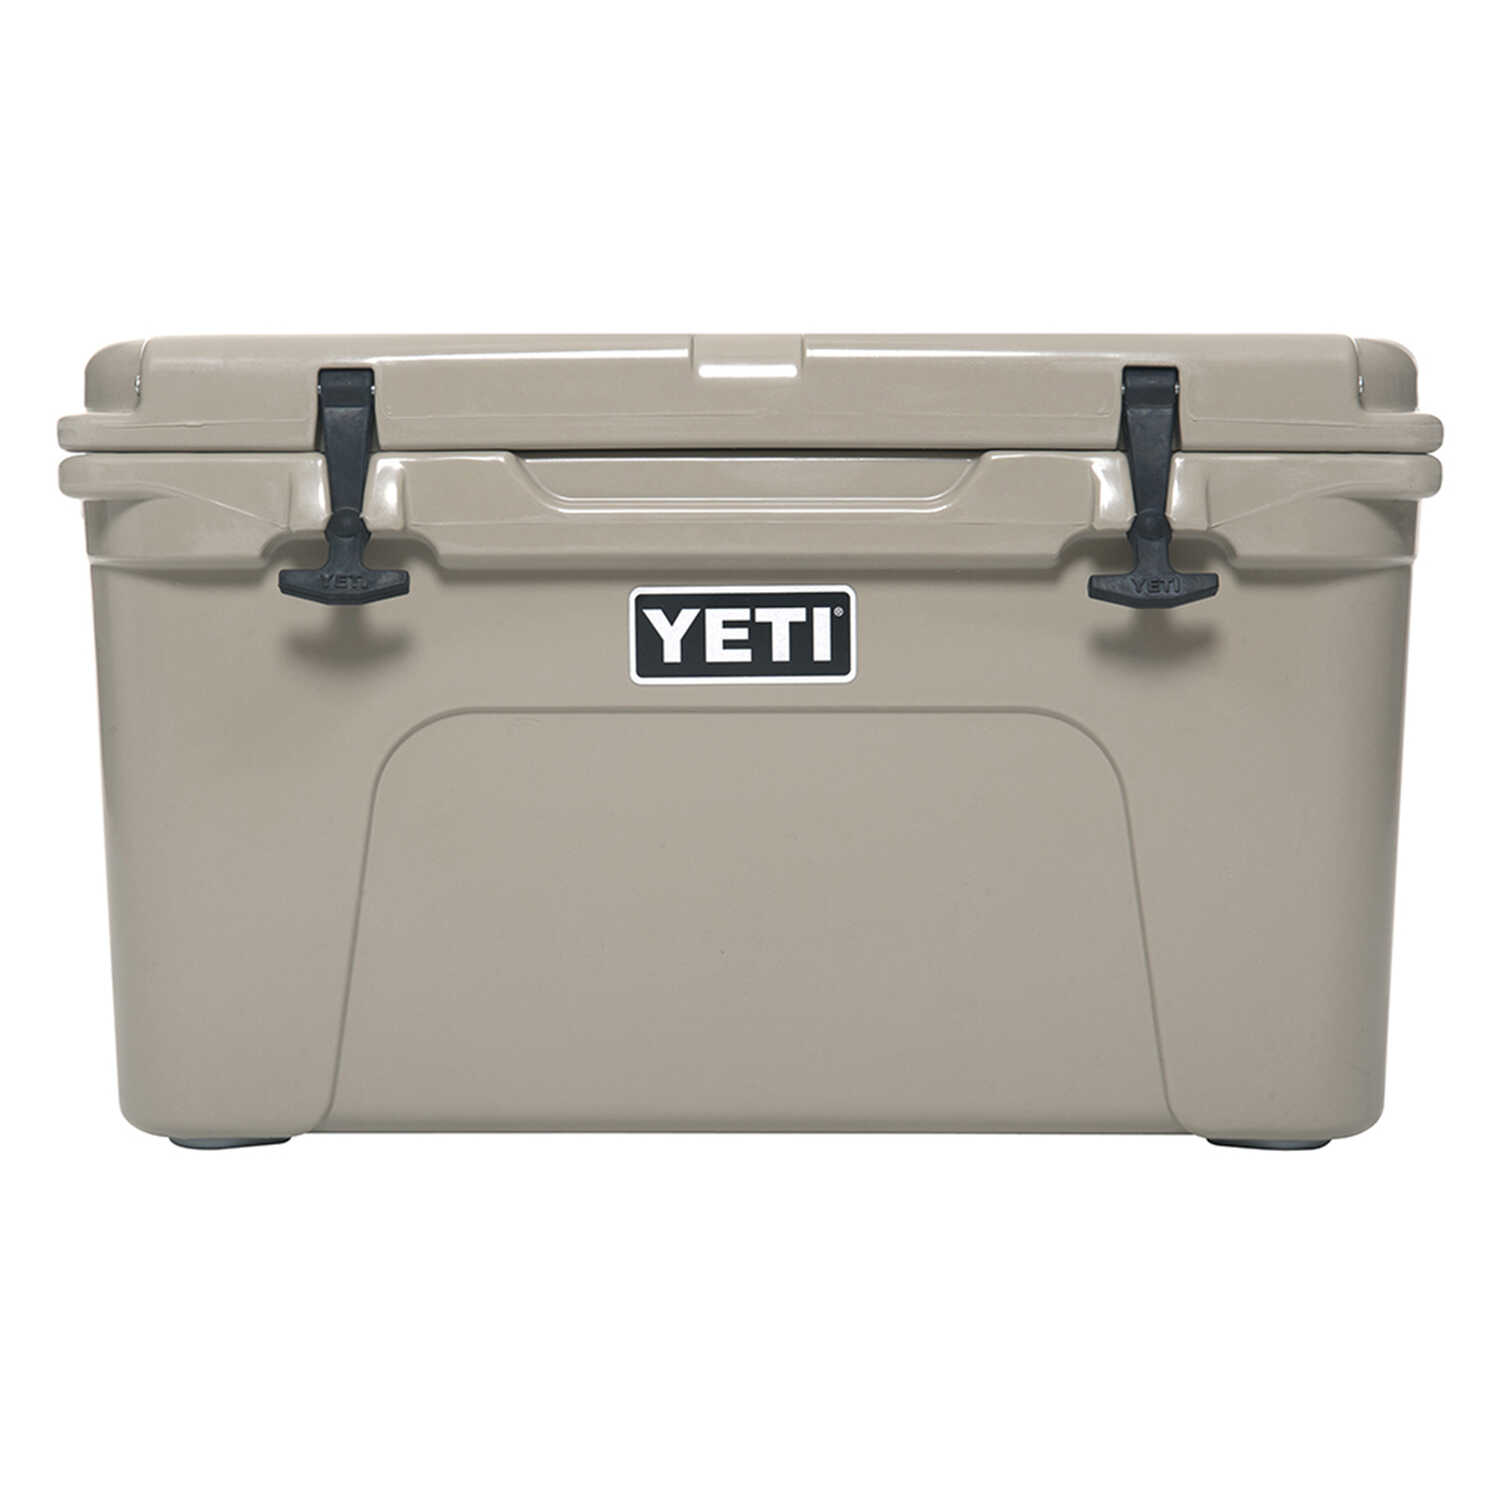 YETI  Tundra 45  Cooler  26 cans Tan